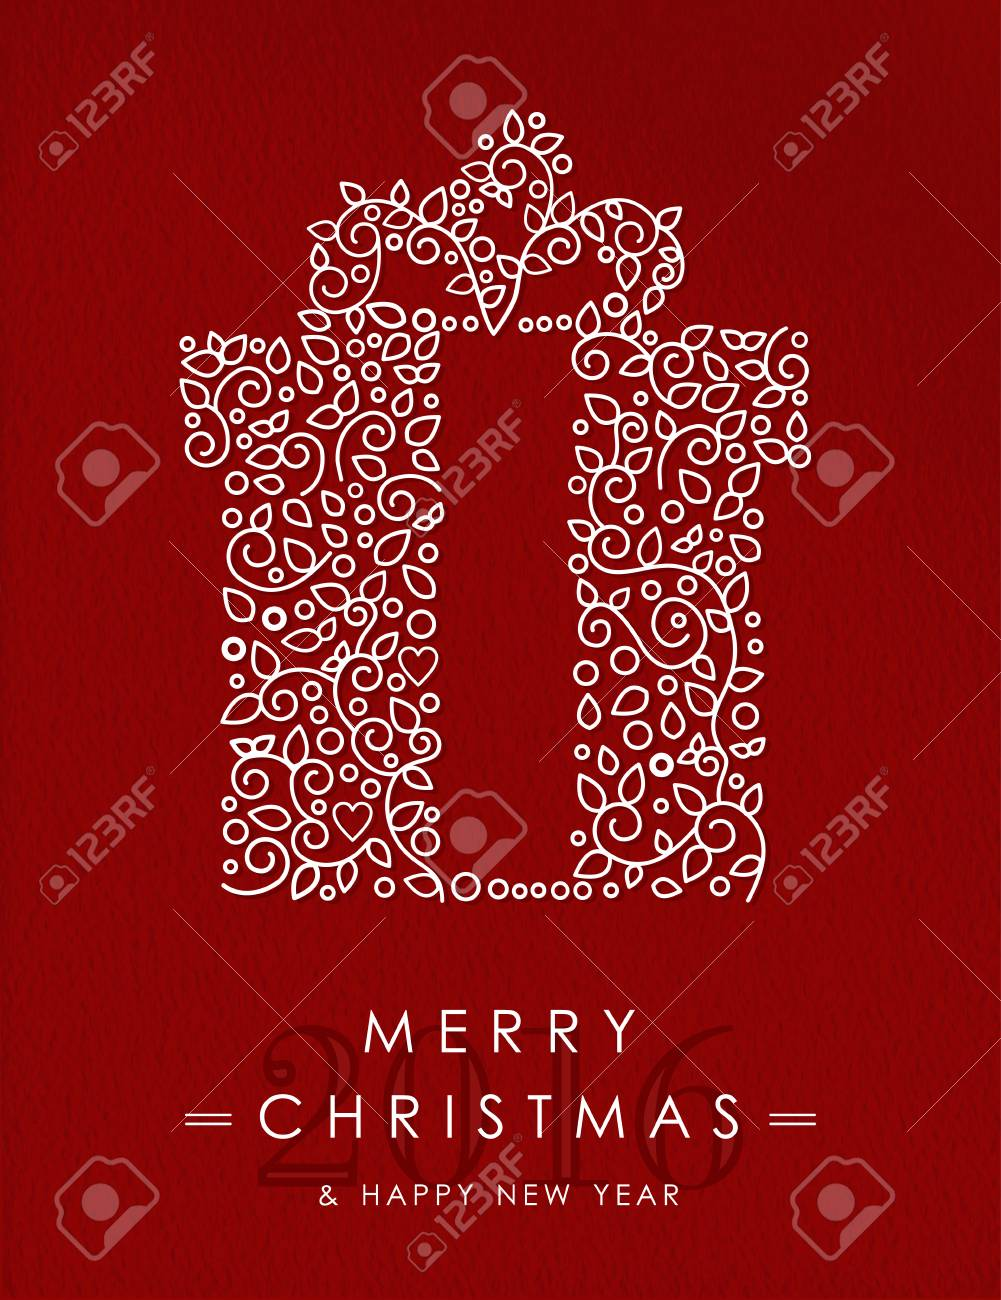 Merry Christmas Happy New Year 2016 Greeting Card Background